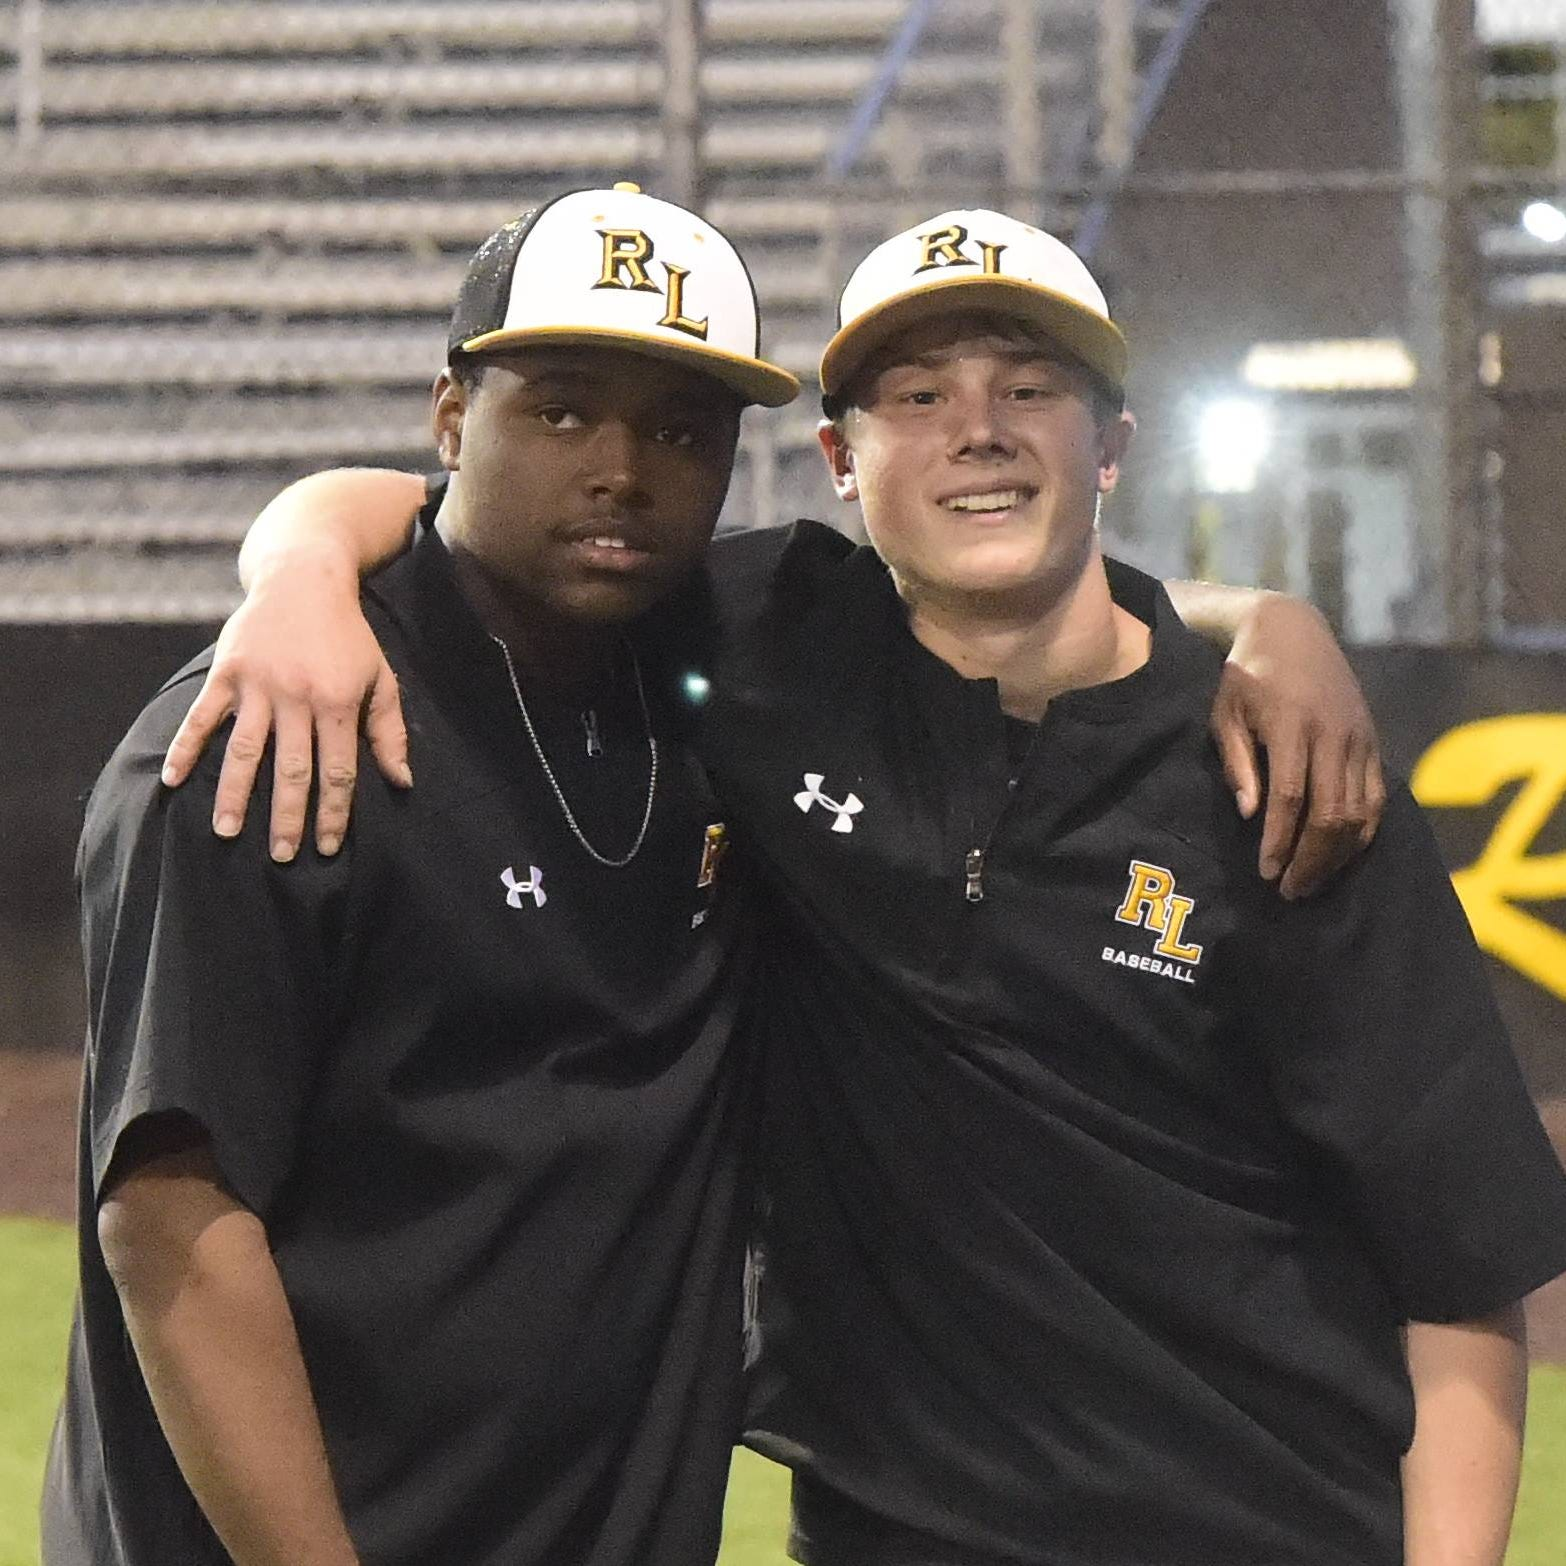 More important than a championship: Red Lion baseball player with autism changes lives